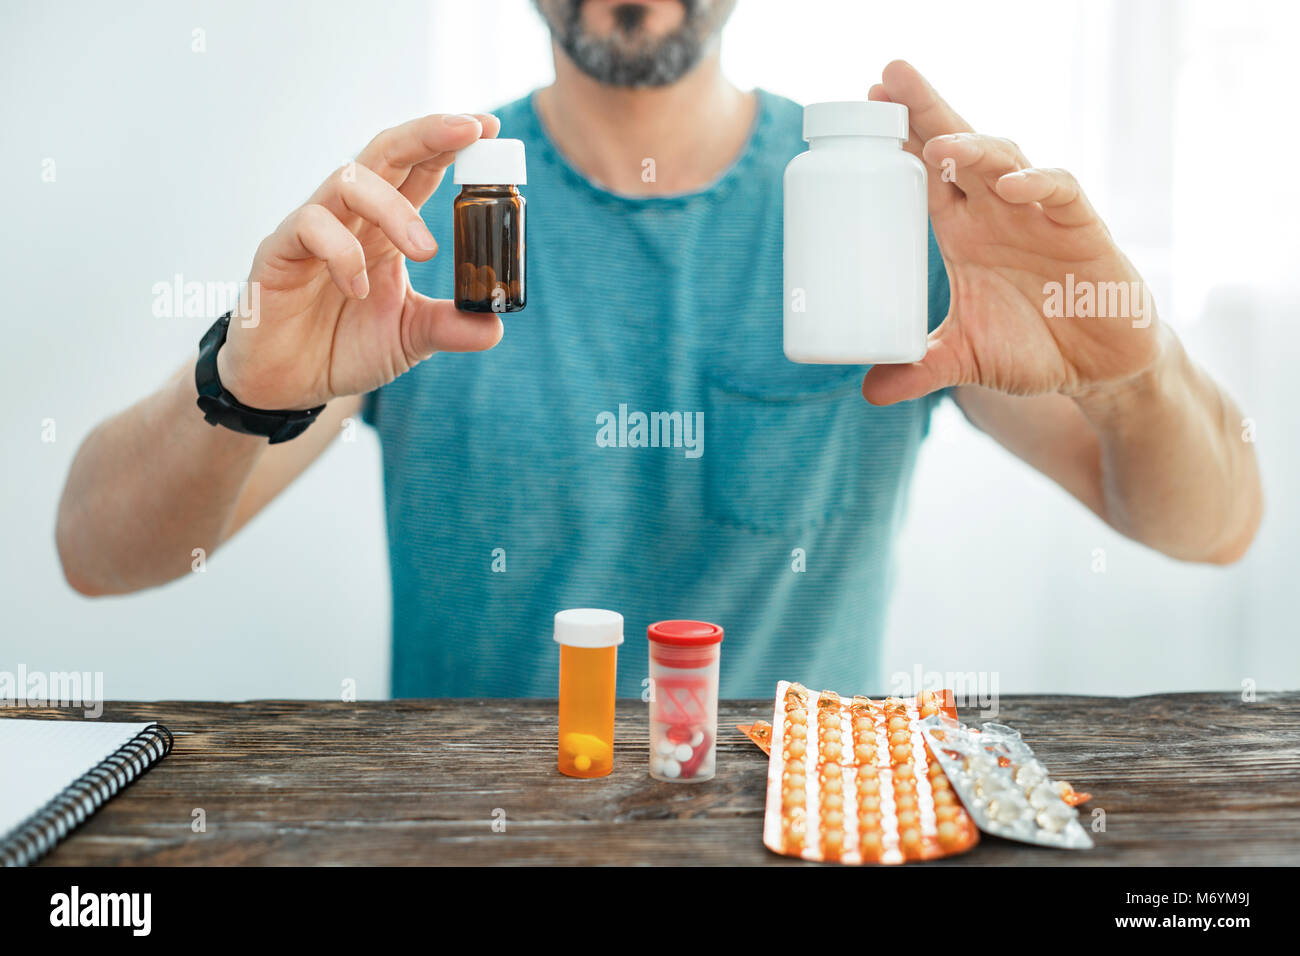 Expensive useful drugs remaining in hand. Stock Photo